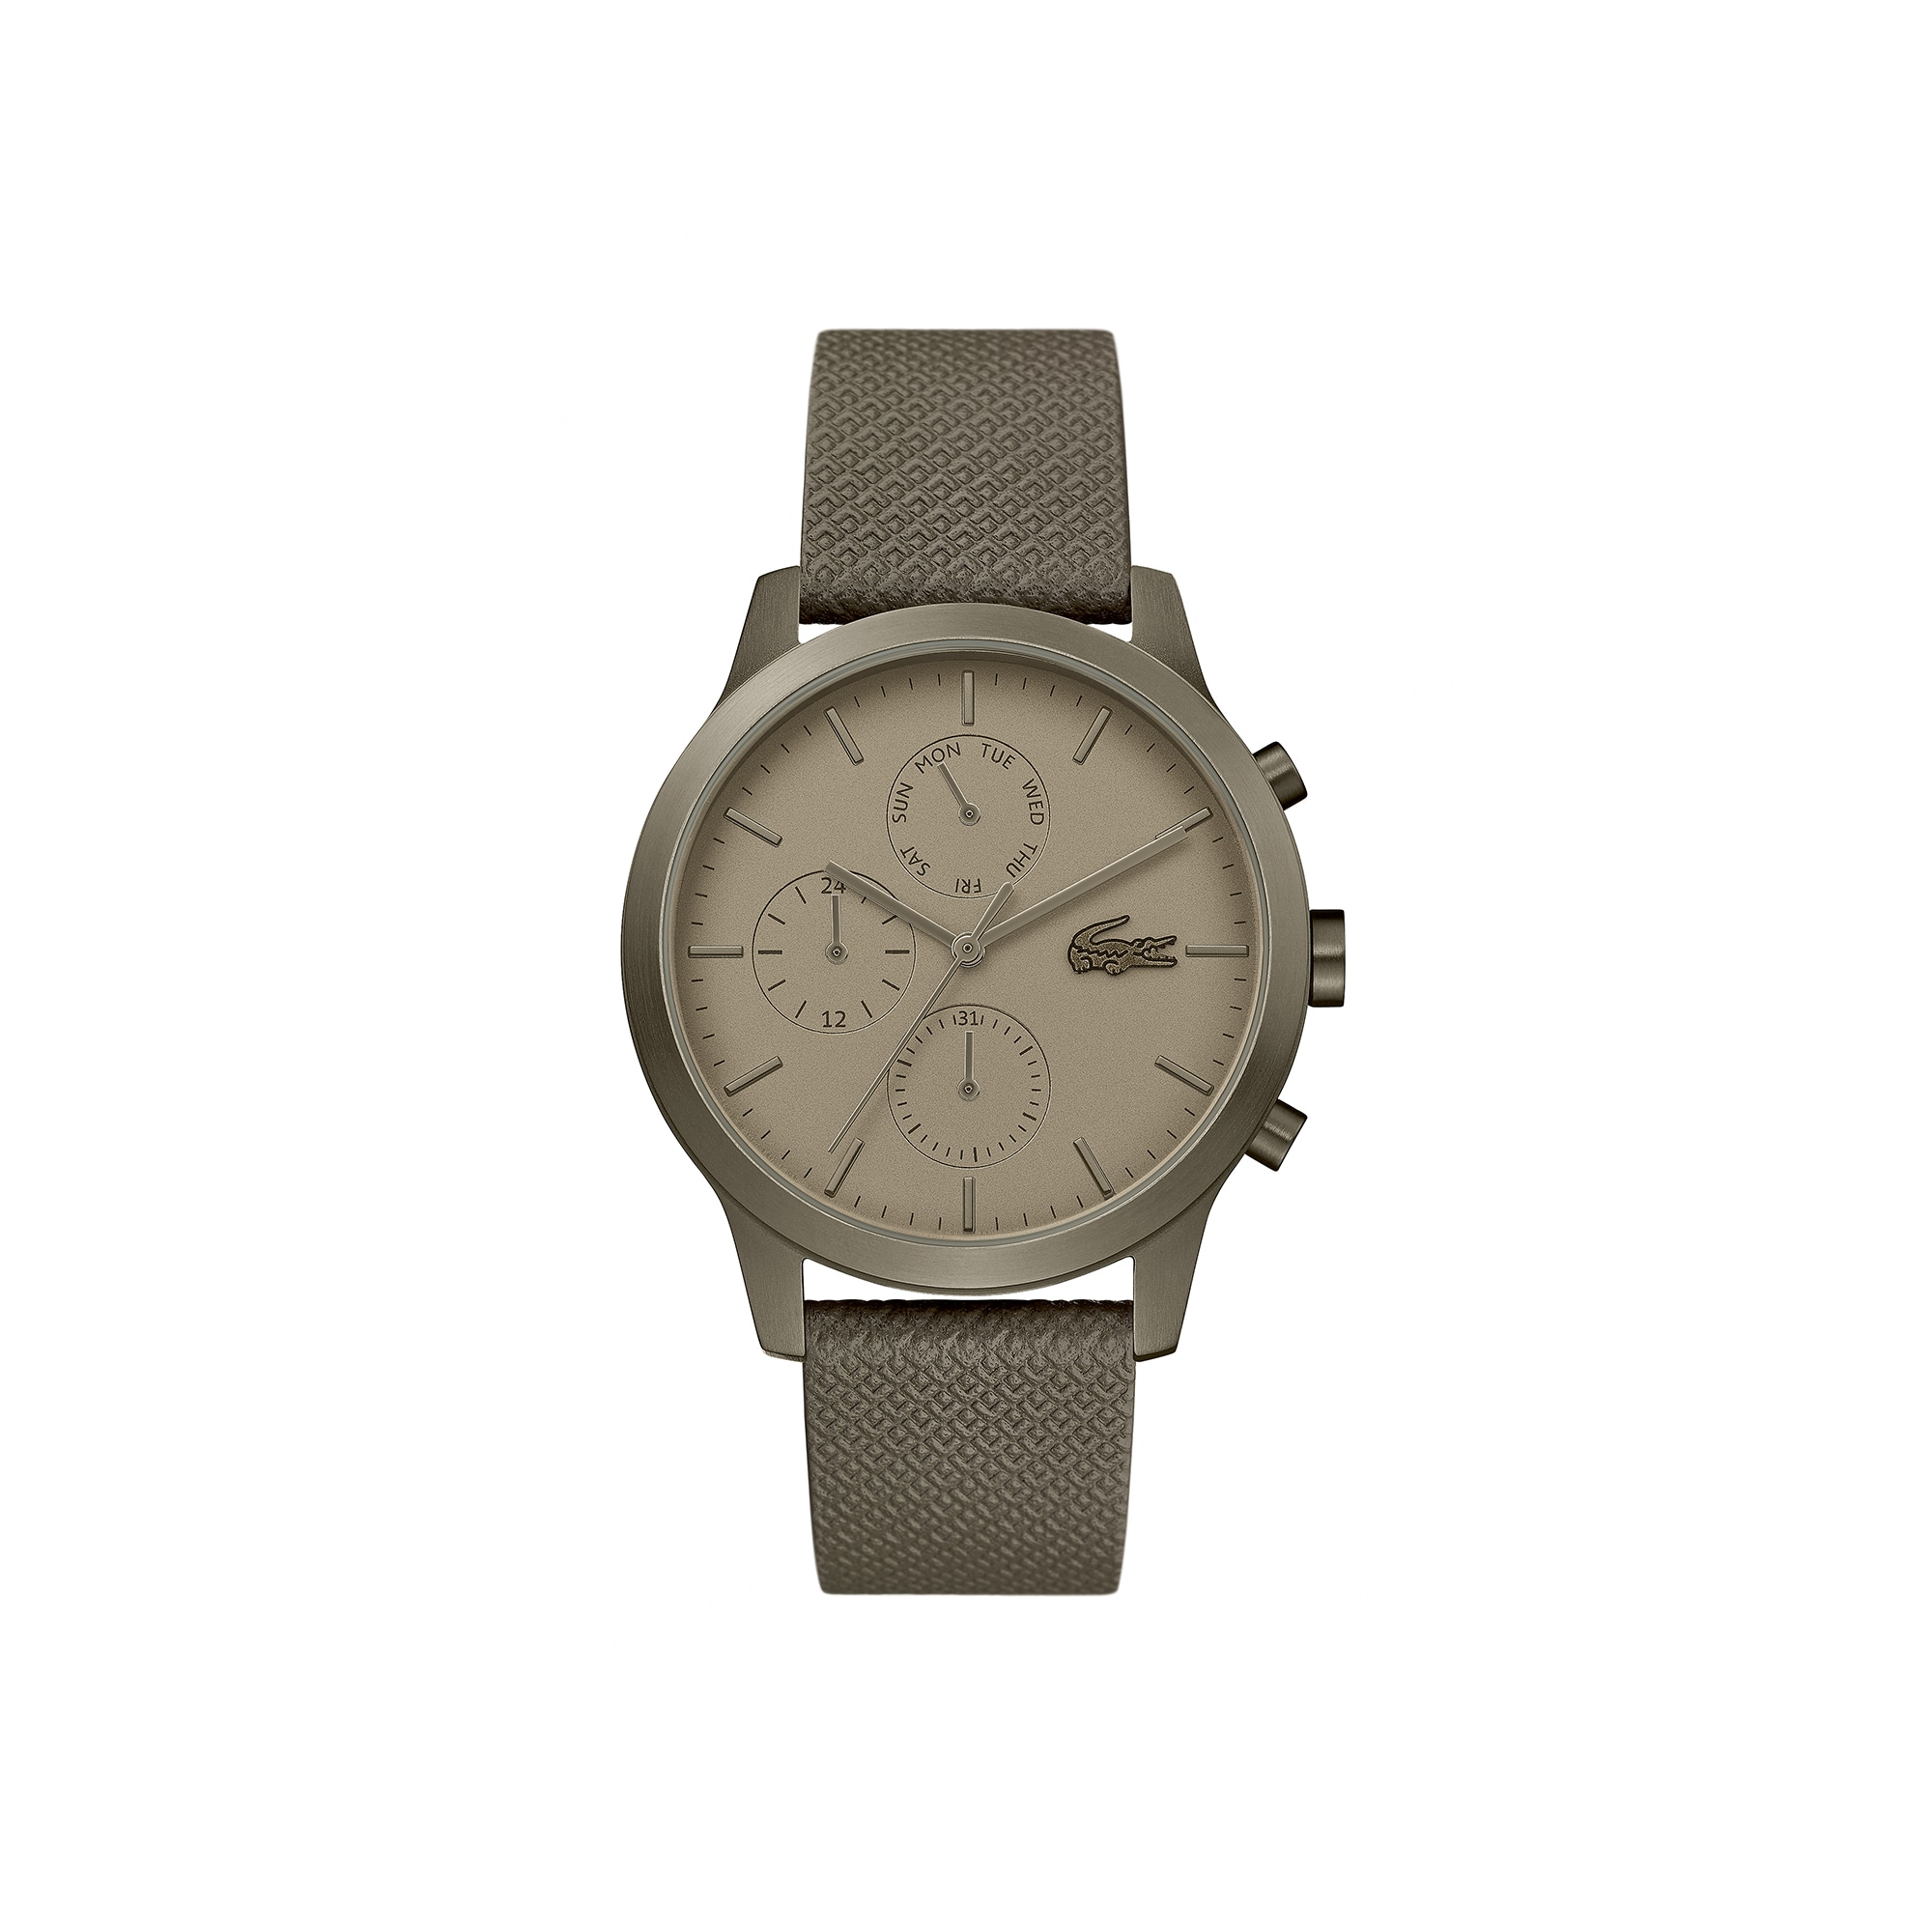 a20a2fd92da Gents Lacoste.12.12 Watch with Khaki Leather Petit Piqué Strap